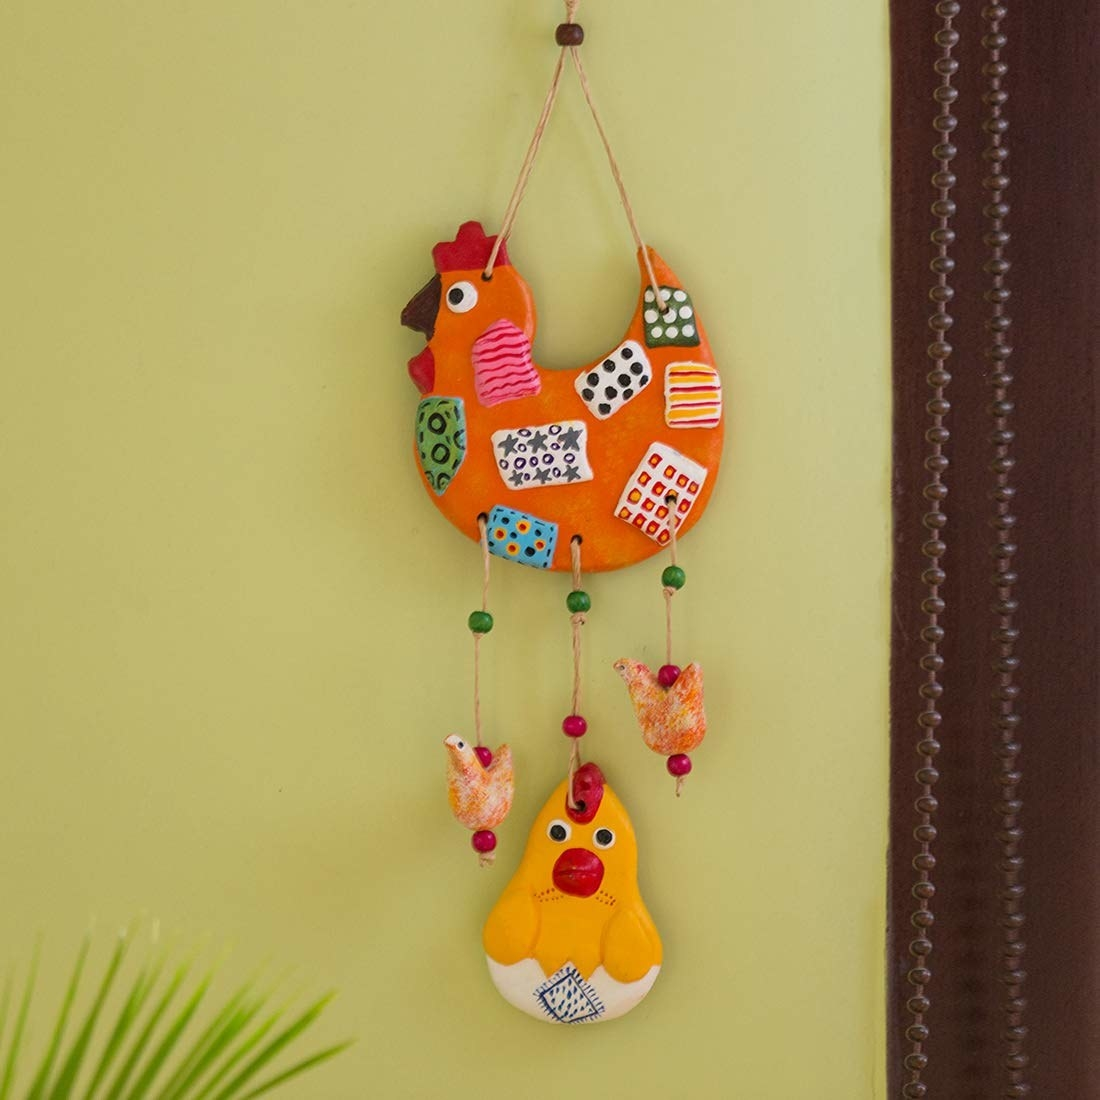 A chicken wall hanging with some chicks and a rooster at the bottom